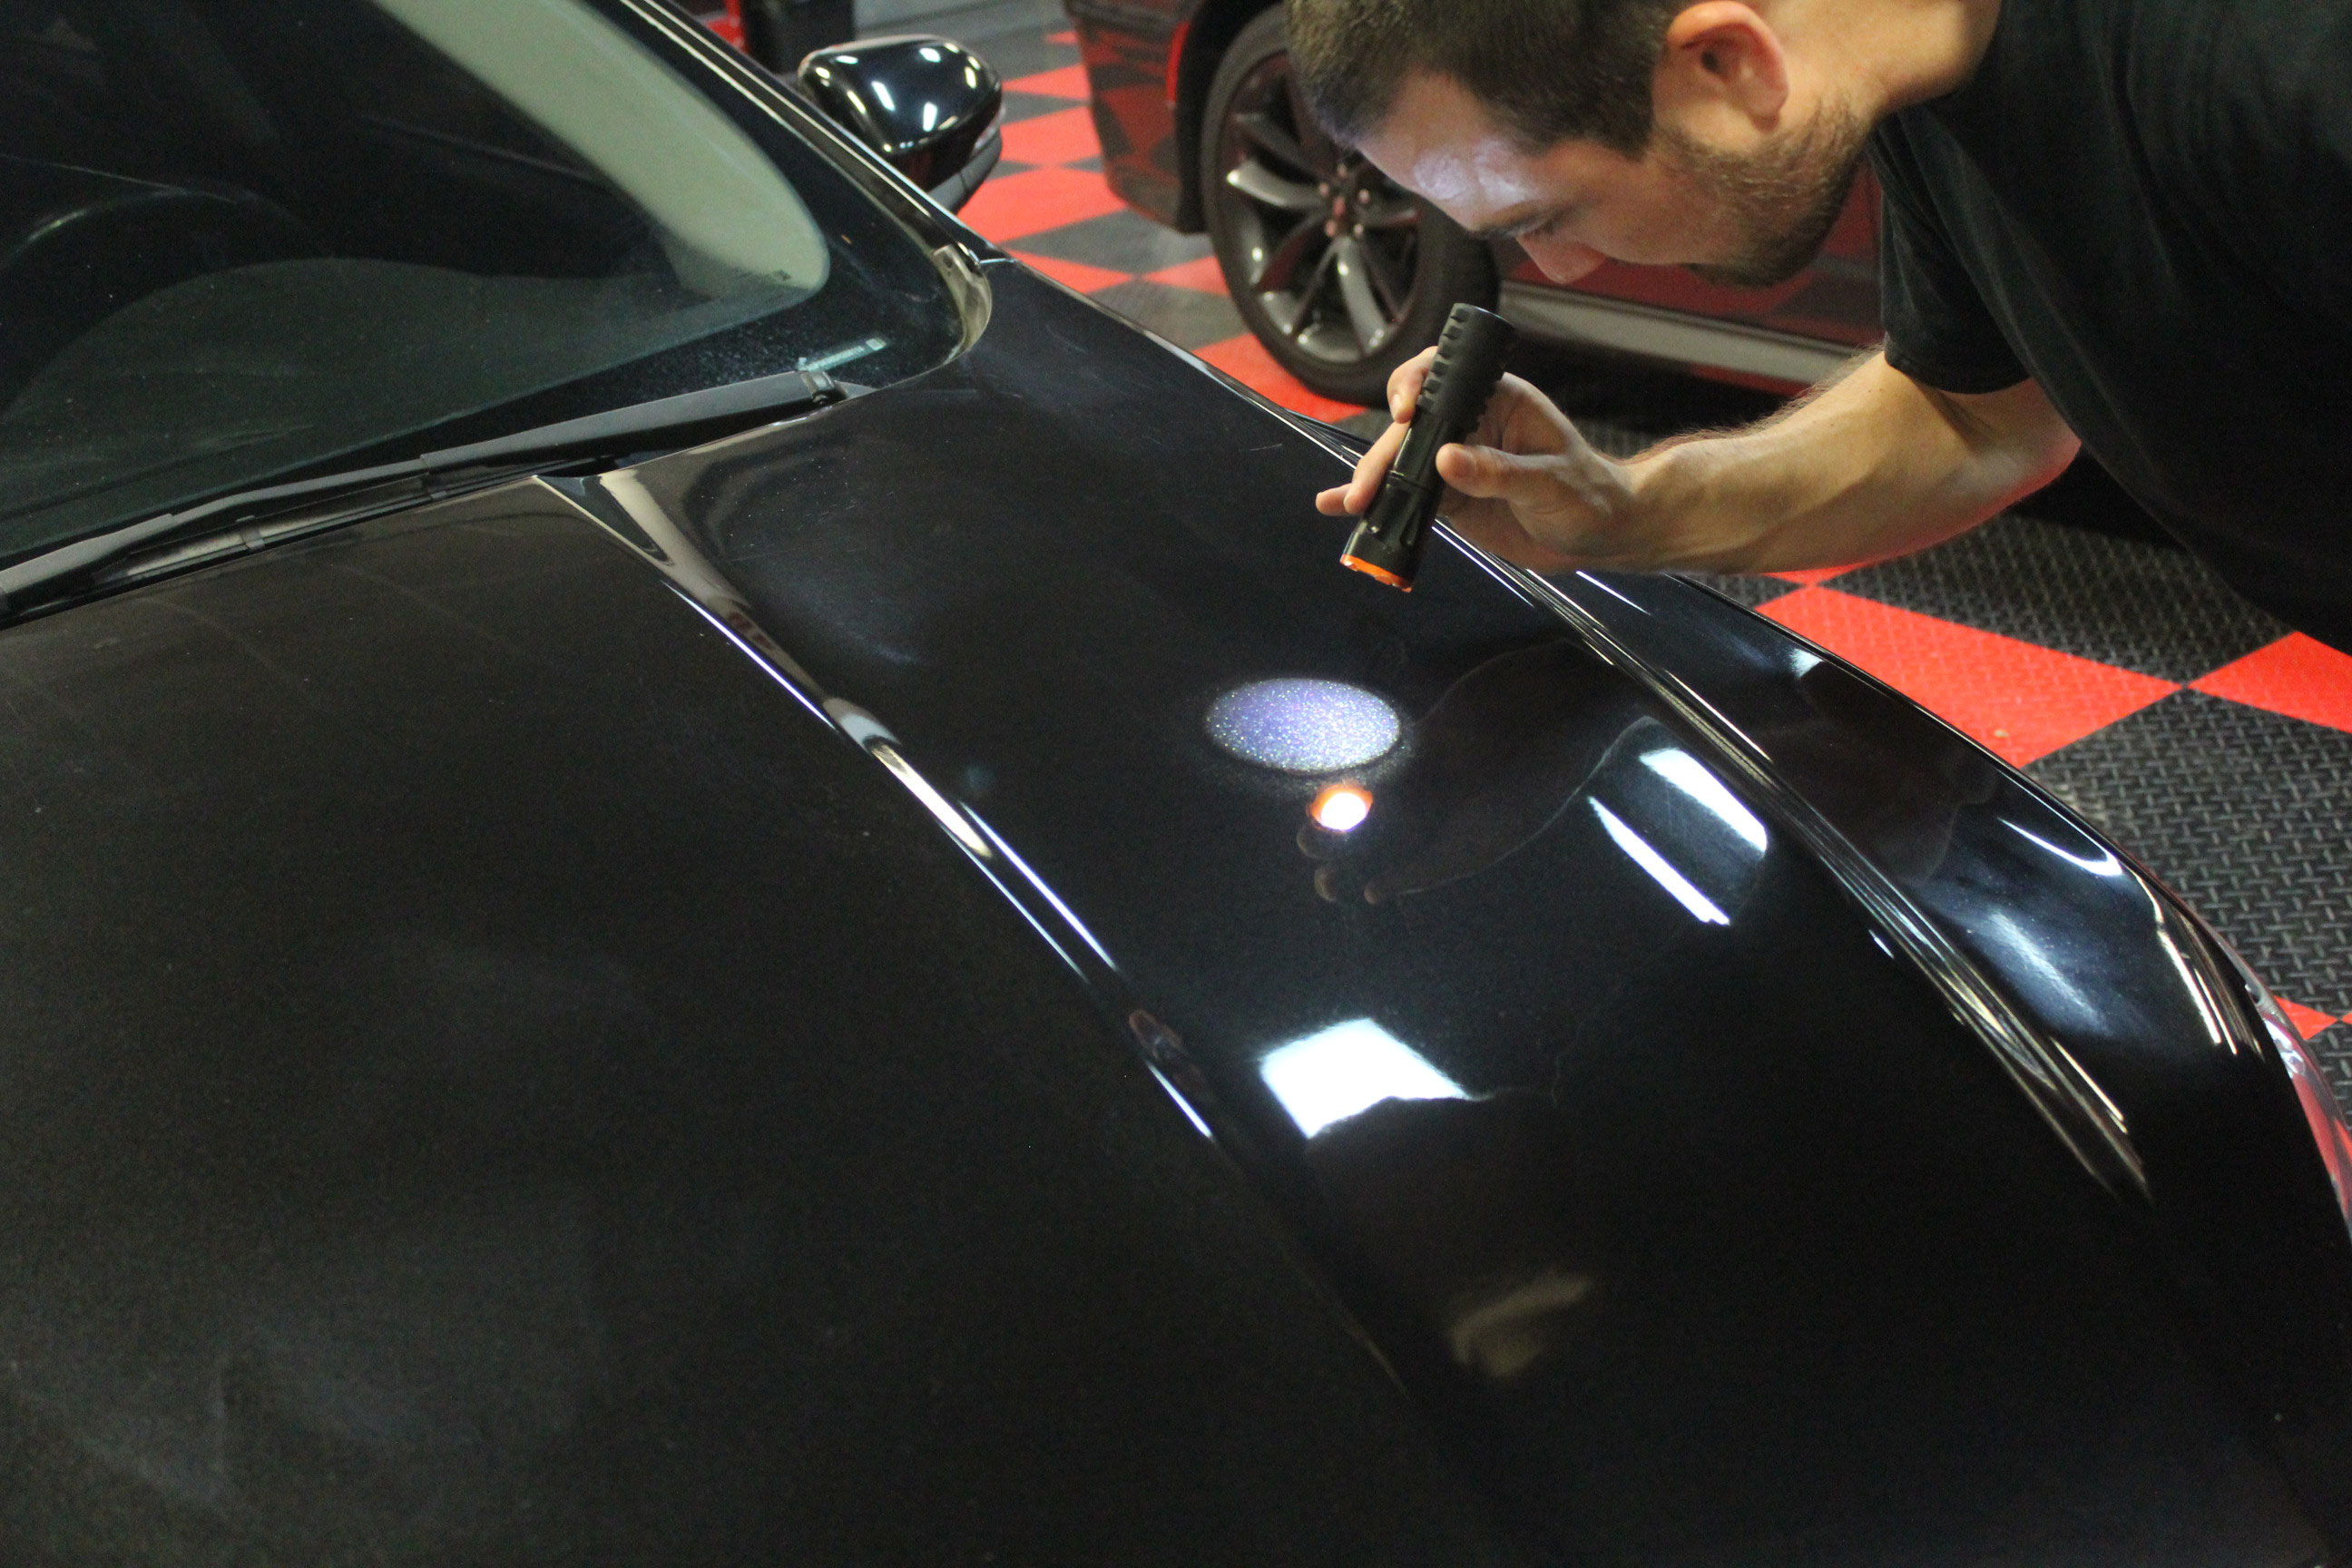 By shining the flashlight on the paint and looking at the perimeter of the on the light, we will be able to get a good view of the severity of the scratches, swirls, and defects in the paint.